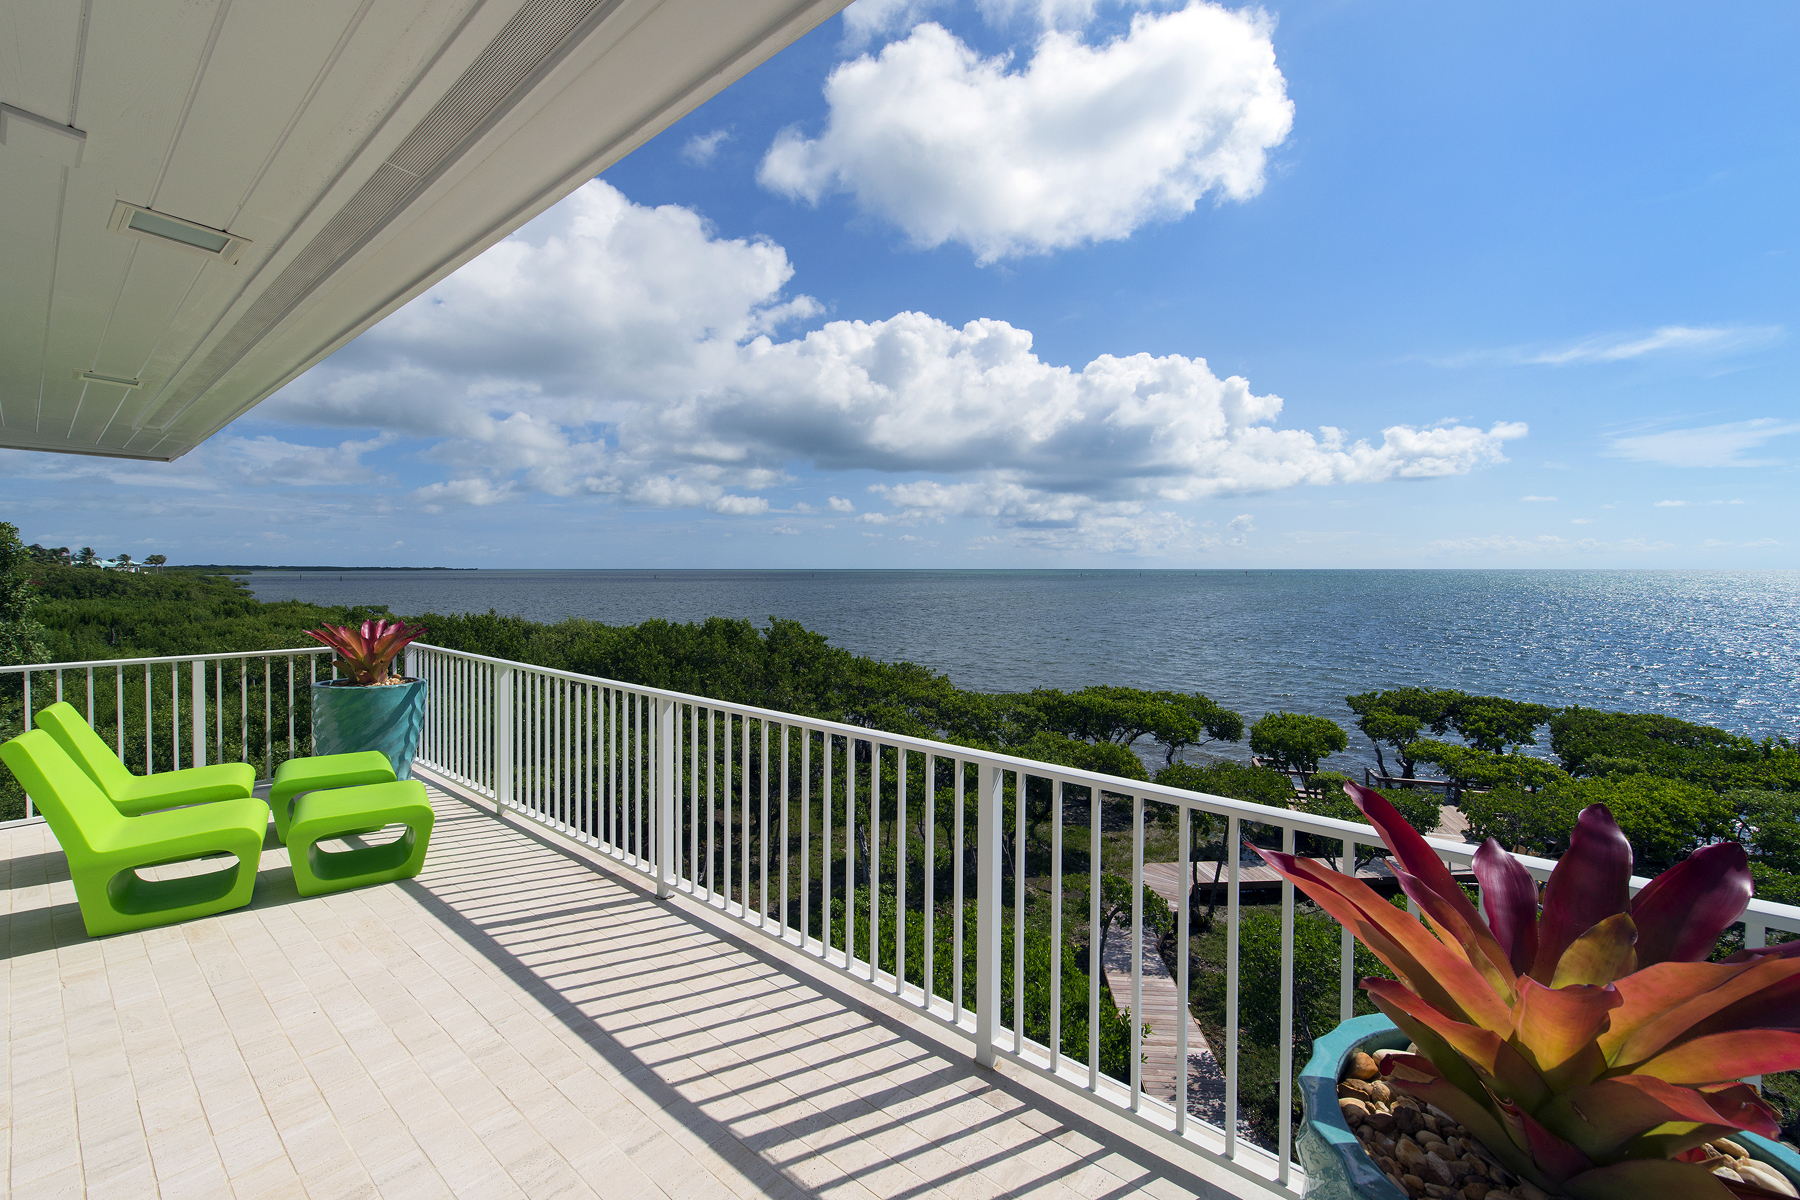 Maison unifamiliale pour l Vente à Captivating Ocean Front Views at Ocean Reef 15 Sunrise Cay Drive Ocean Reef Community, Key Largo, Florida, 33037 United States